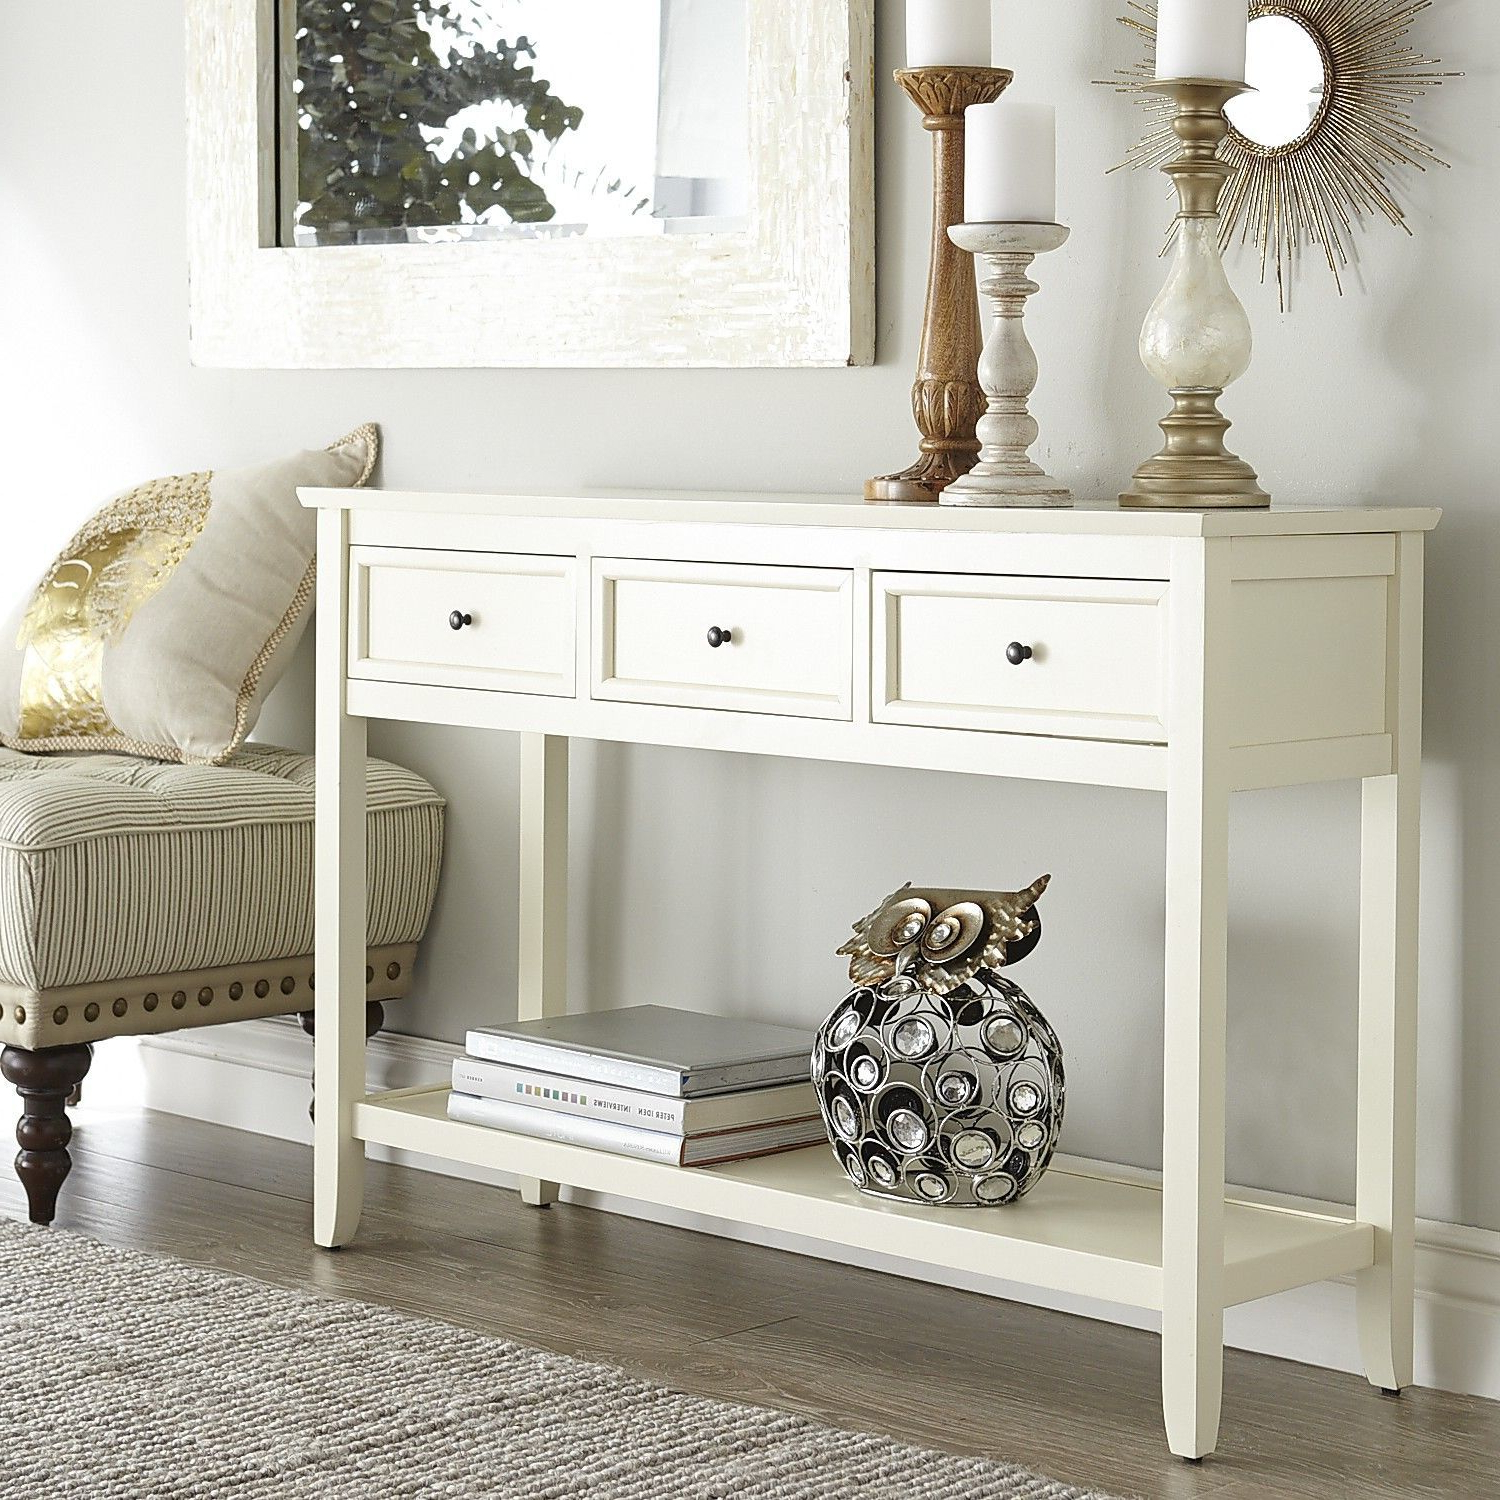 Ashington Console Table – Antique White | Pier 1 Imports | Ballston With Hand Carved White Wash Console Tables (View 14 of 20)